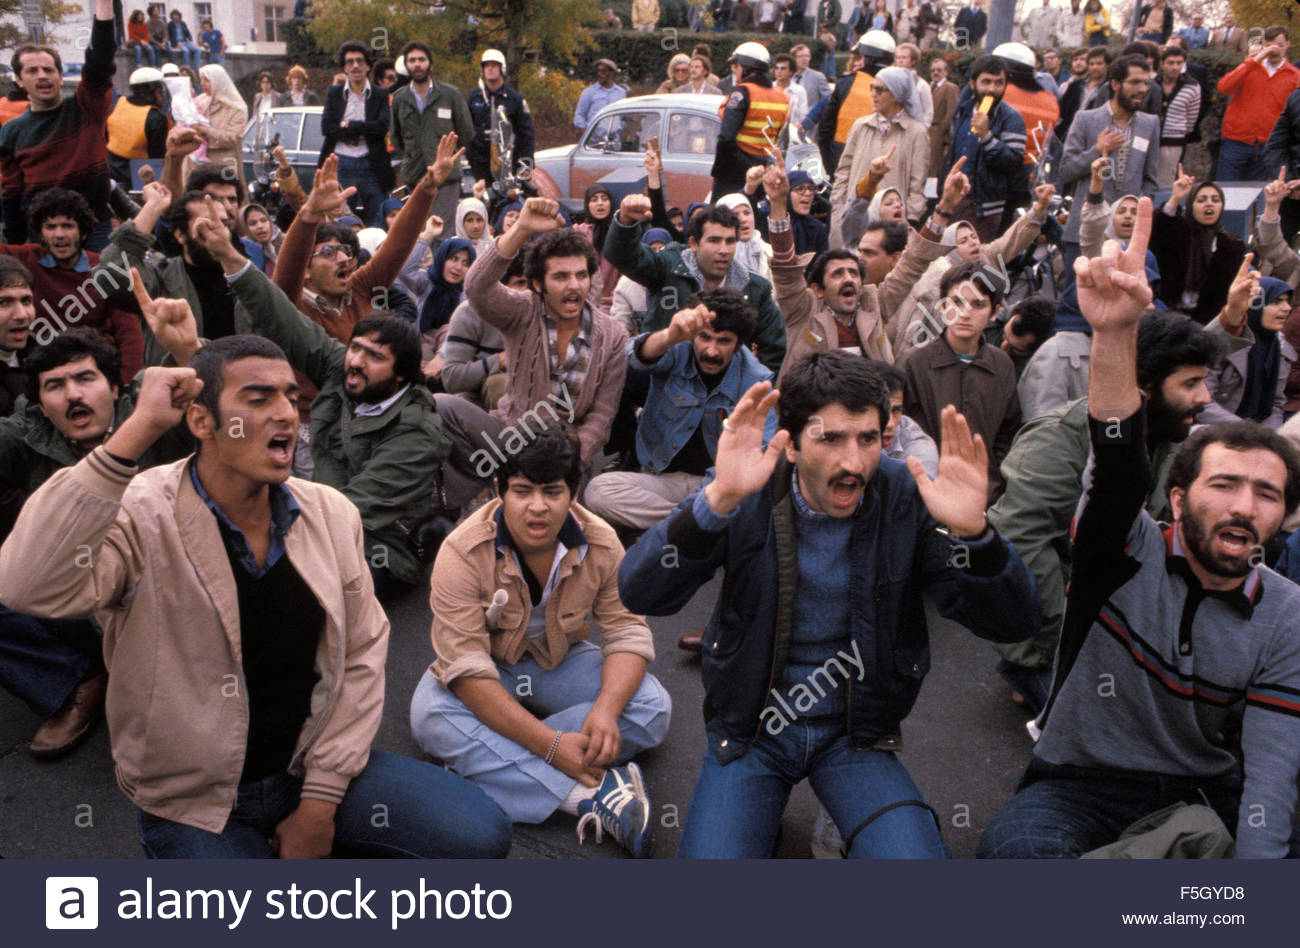 File. 4th Nov, 2015. Iran Hostage Crisis (November 4, 1979, to January 20, 1981) in which militants in Iran seized - Stock Image